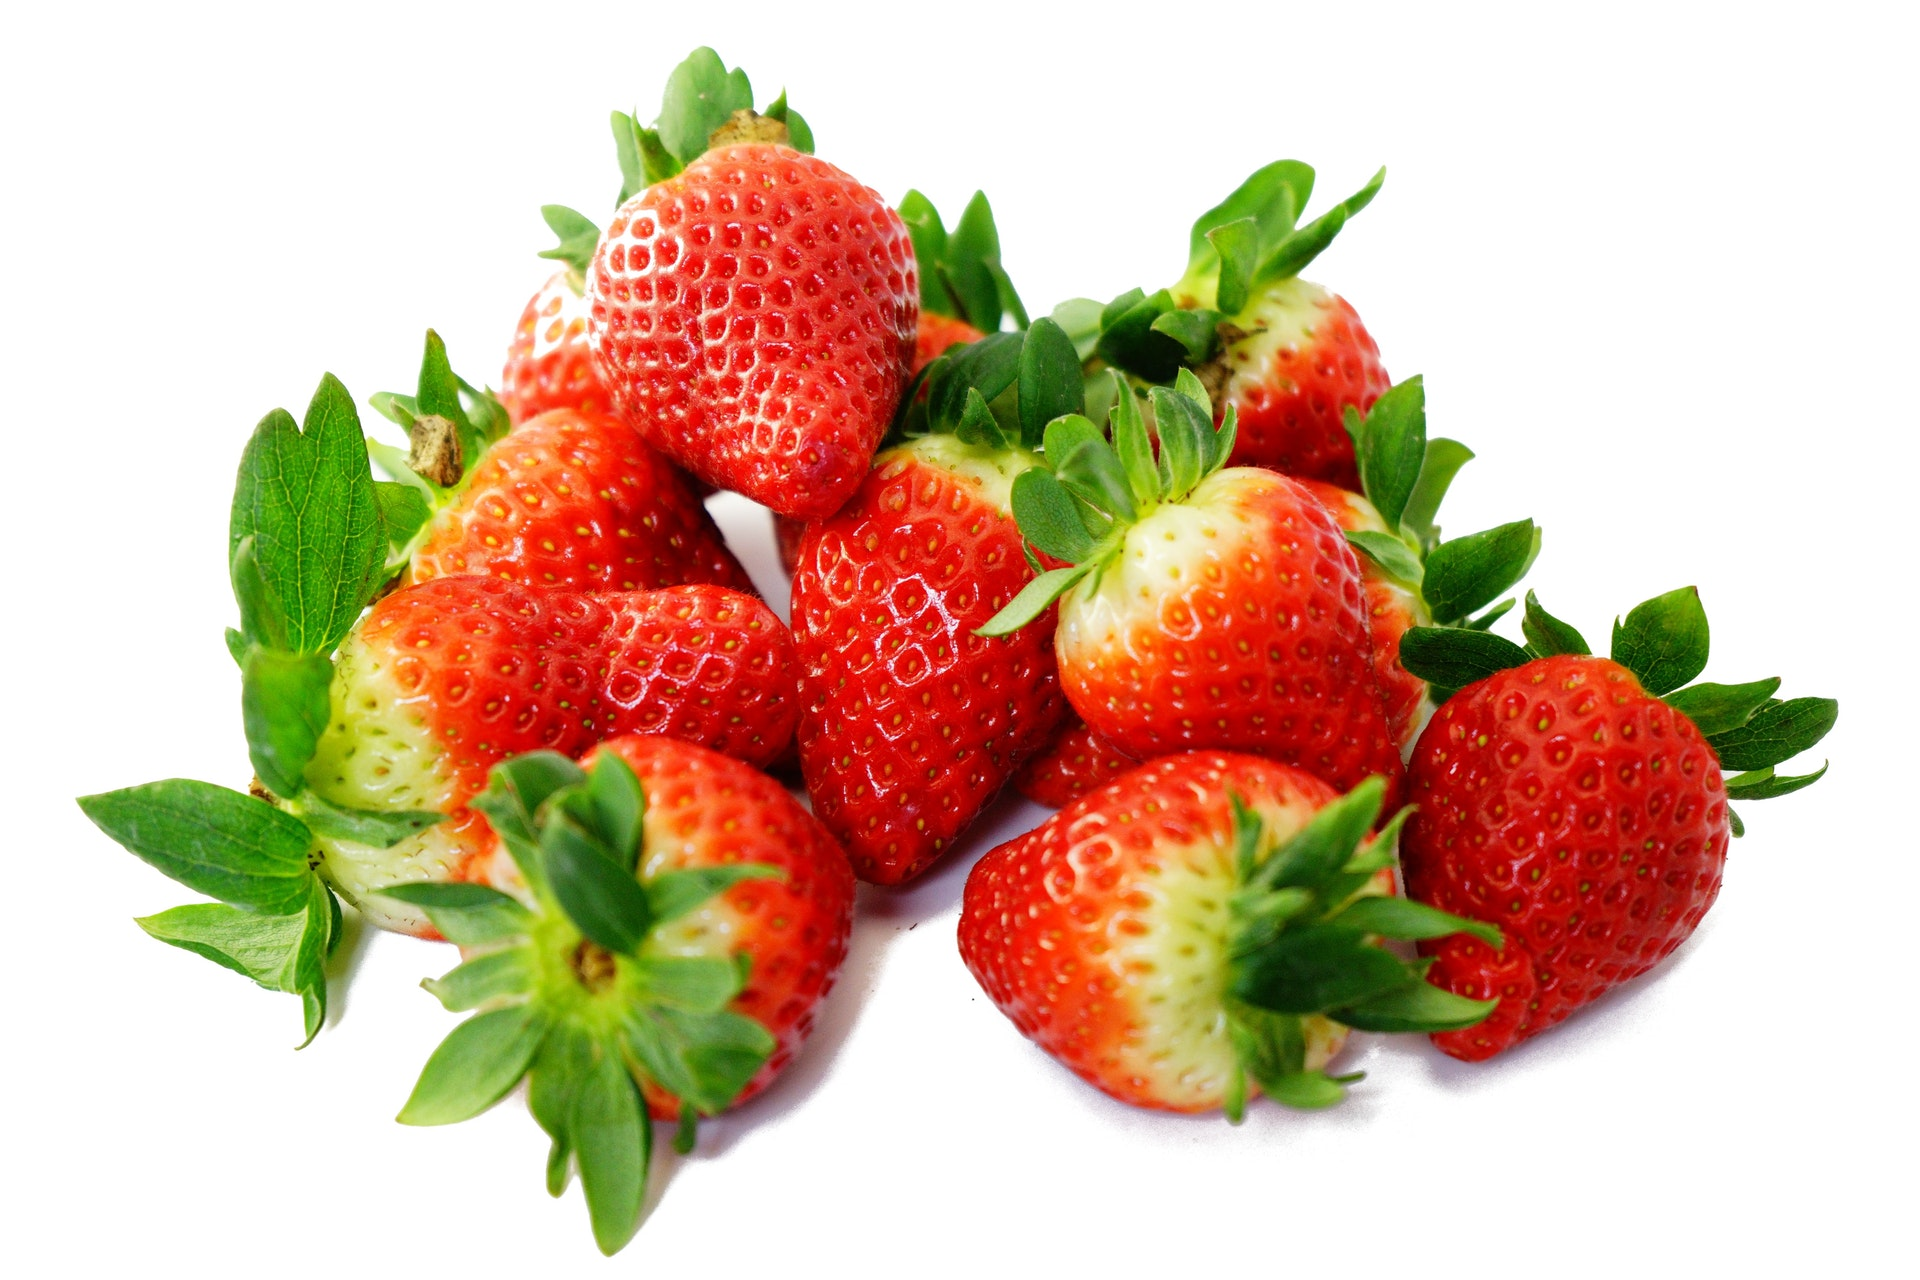 strawberries-sweet-red-delicious-55744.jpeg